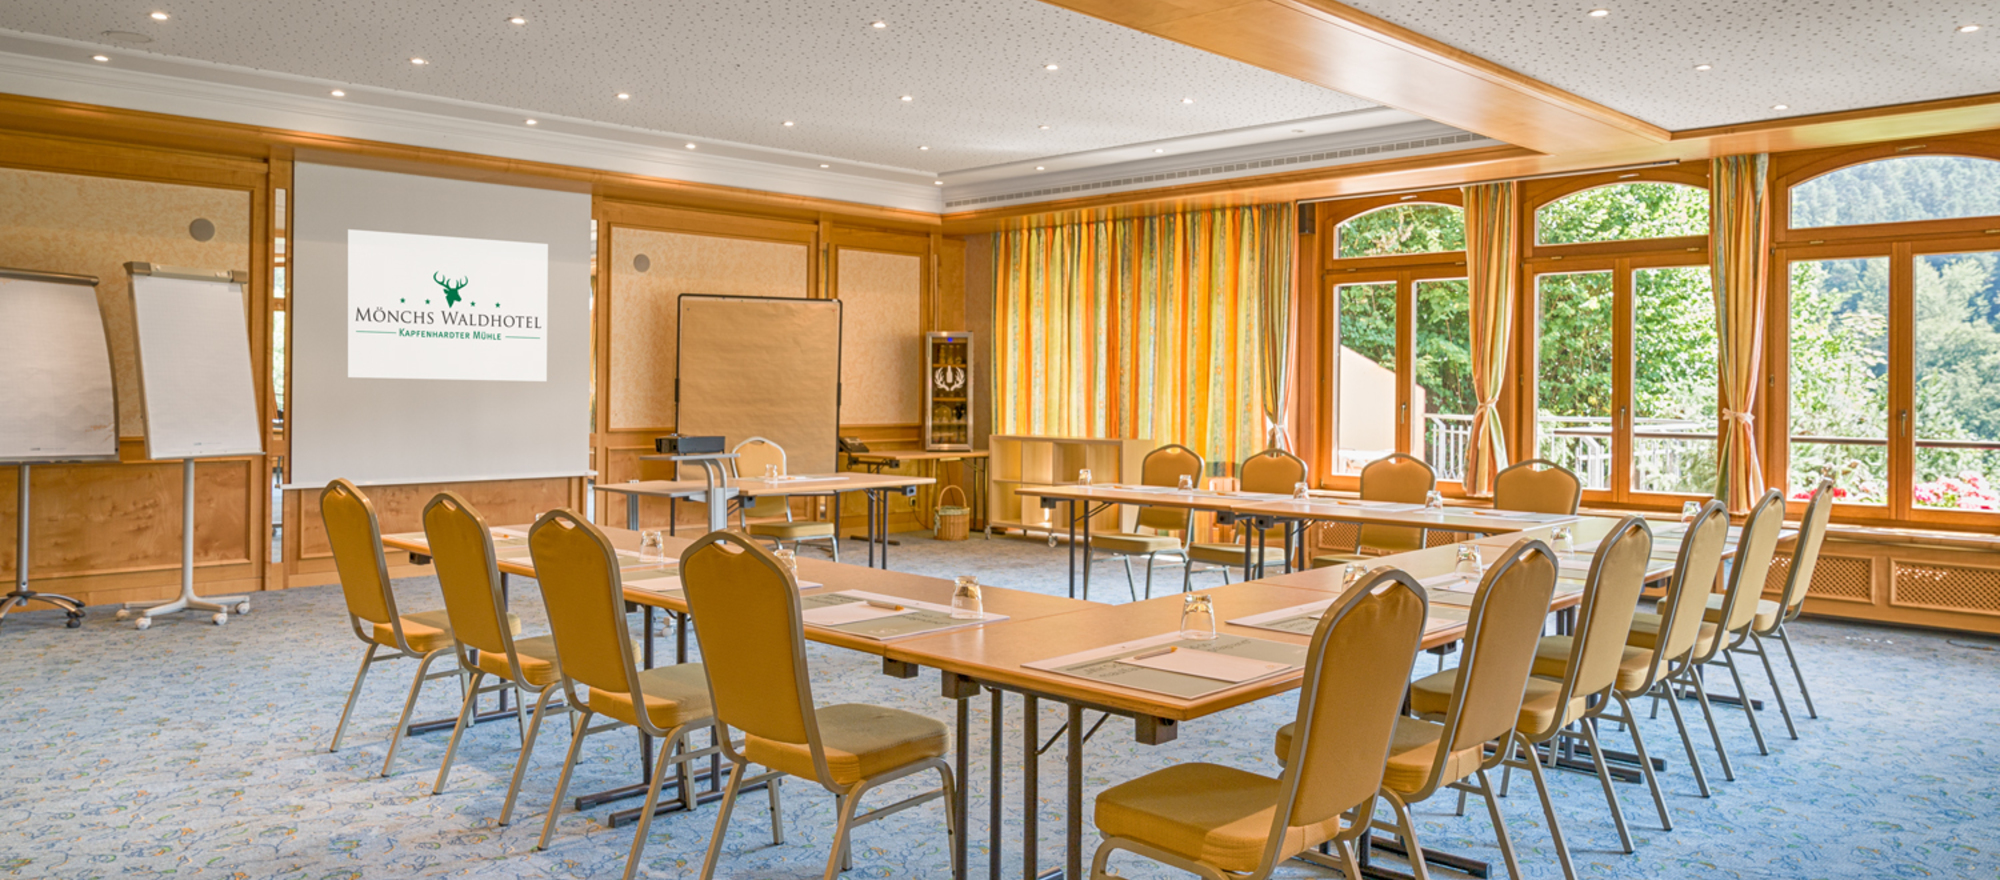 Brightly and modern furnished meeting-rooms at the Ringhotel Moenchs Waldhotel, 4-star hotel  in Unterreichenbach